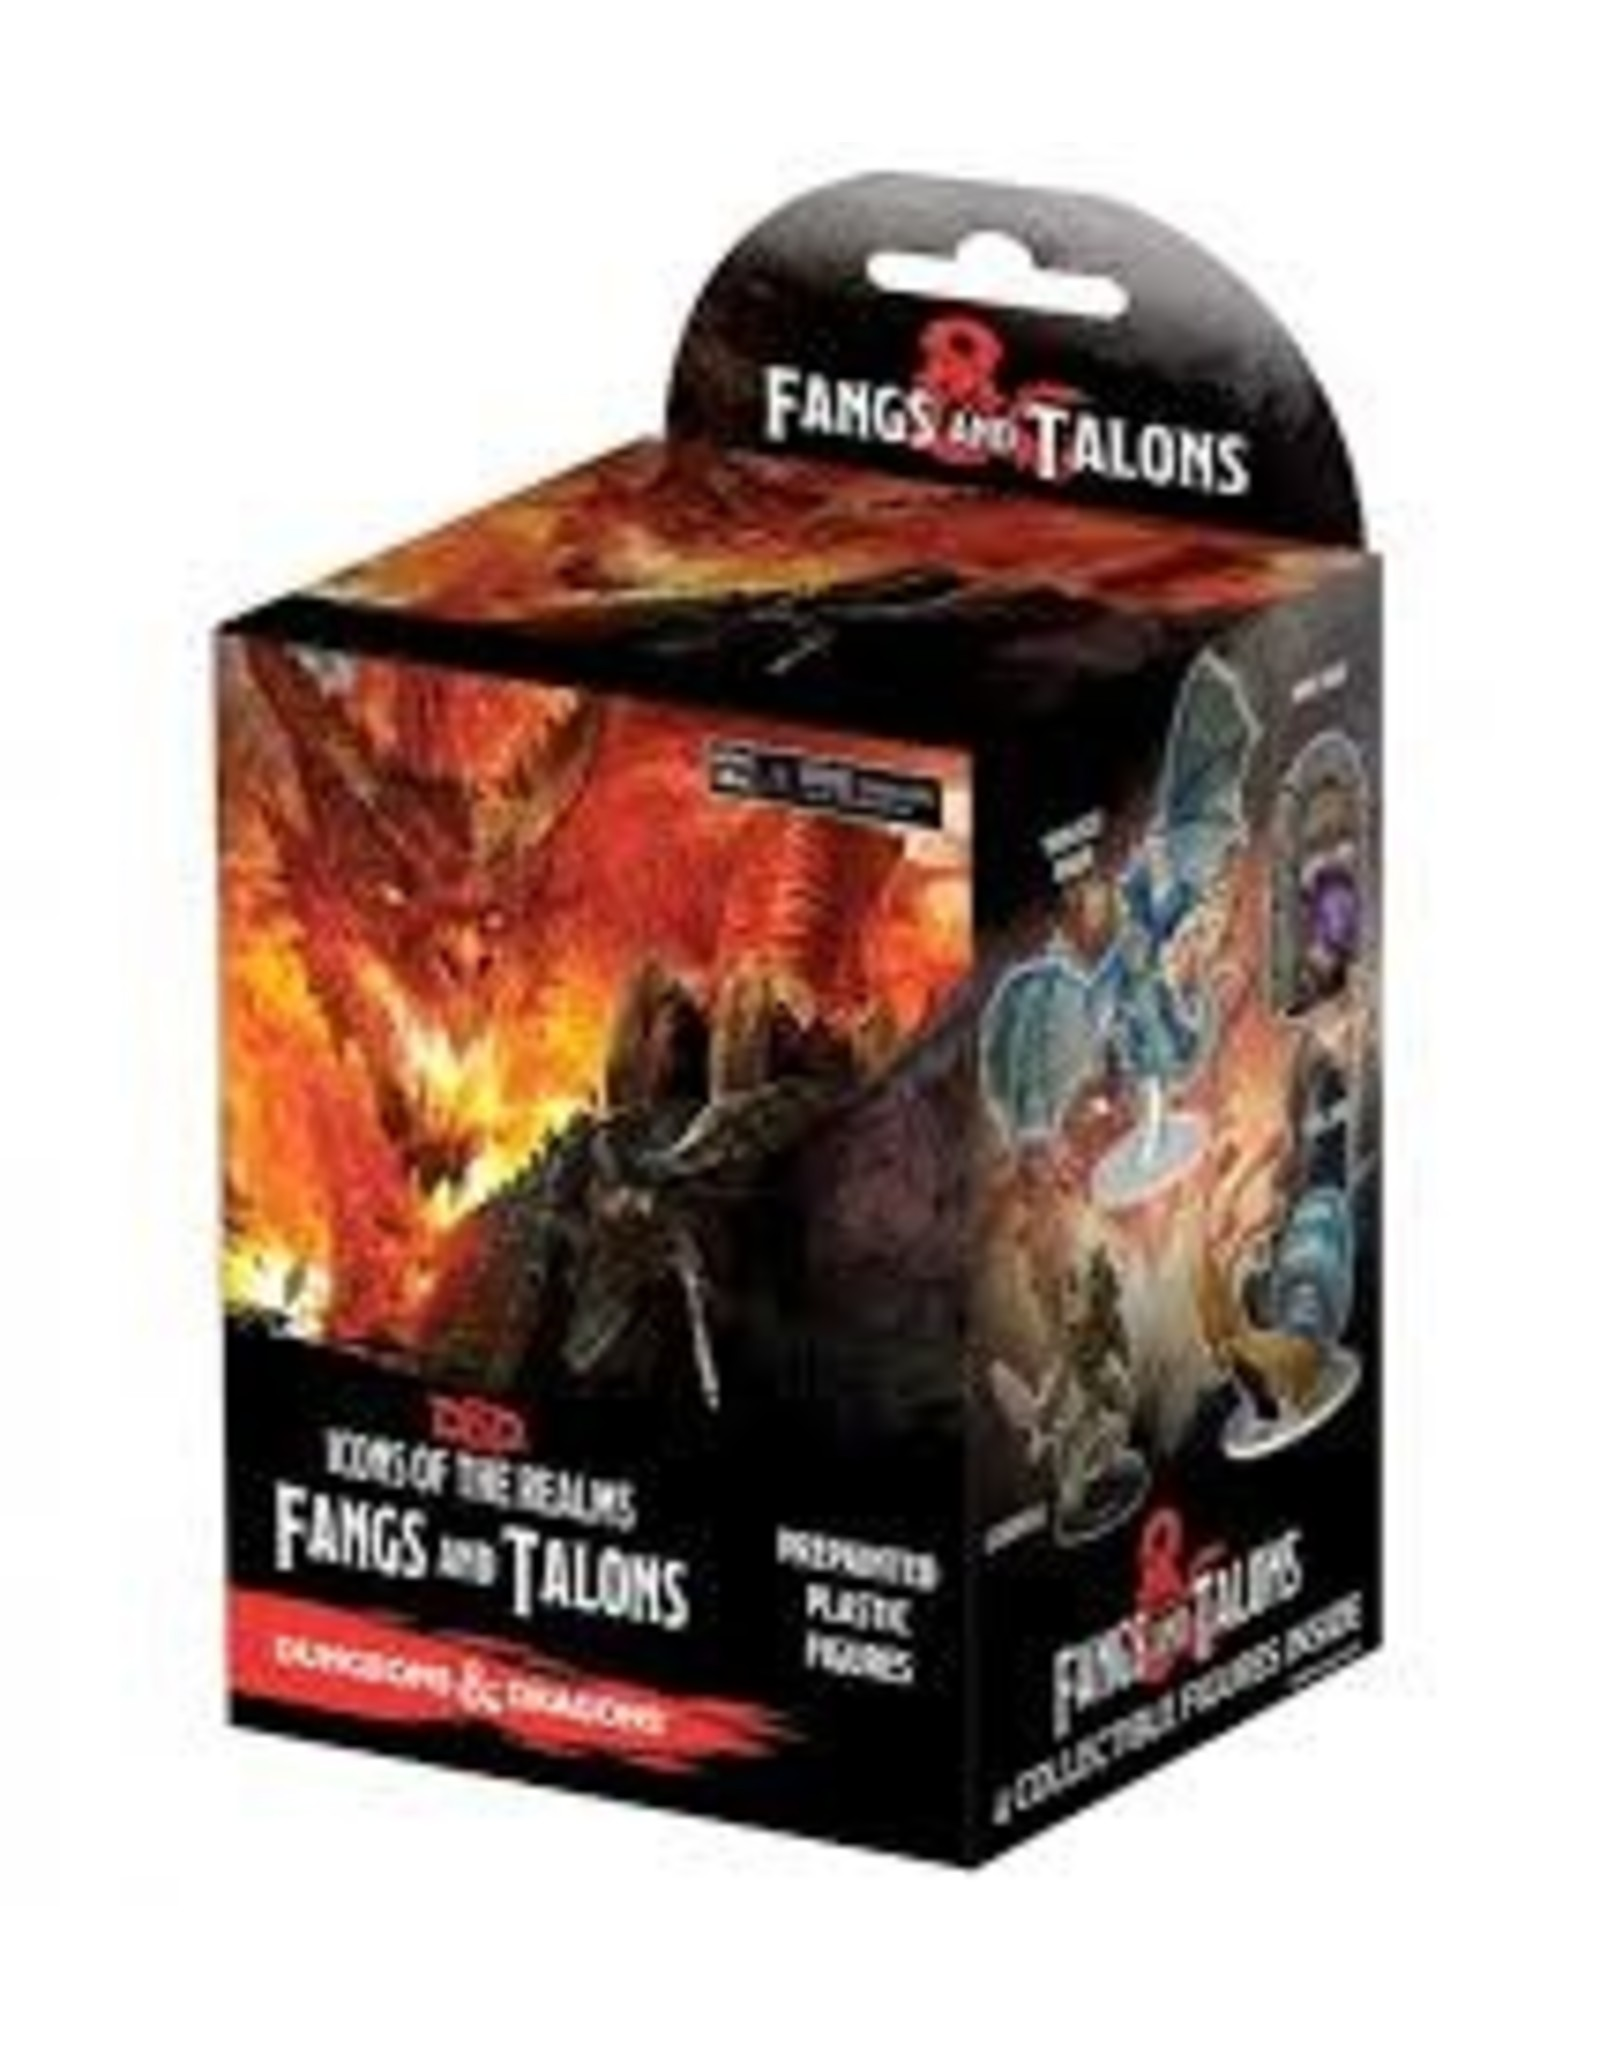 D&D Icon of the Realms  Gangs and Talons Booster Pack